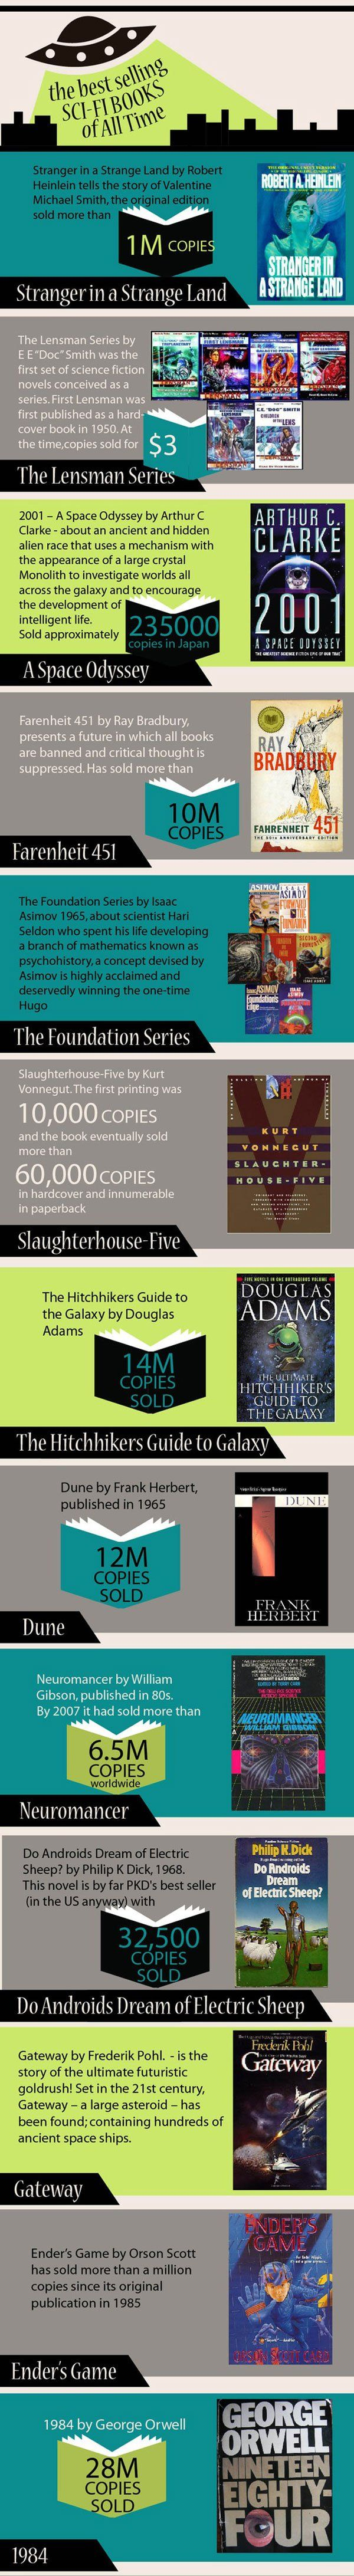 Awesome Infographic: The Best-Selling Sci-Fi Books of All Time